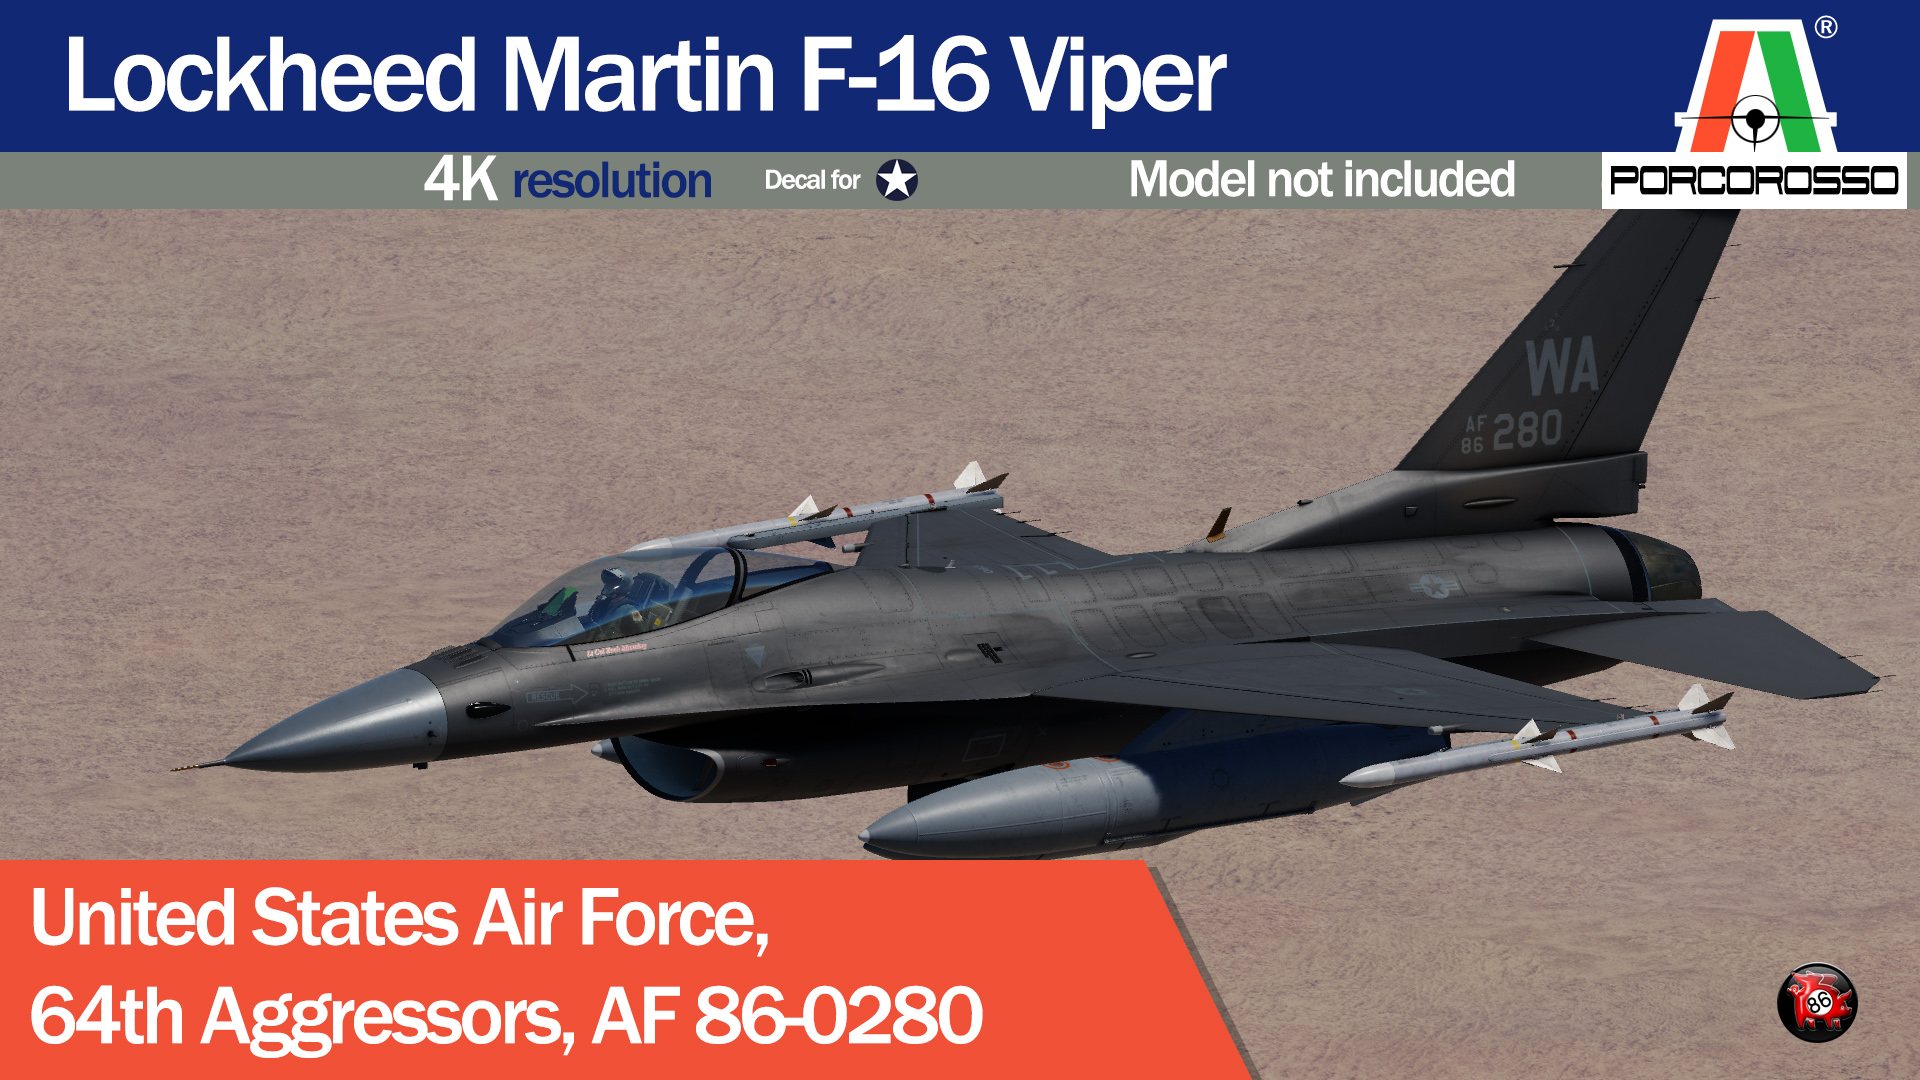 USAF 64th Aggressors Have Glass V, AF 86-280 by PorcoRosso86 UPDATE